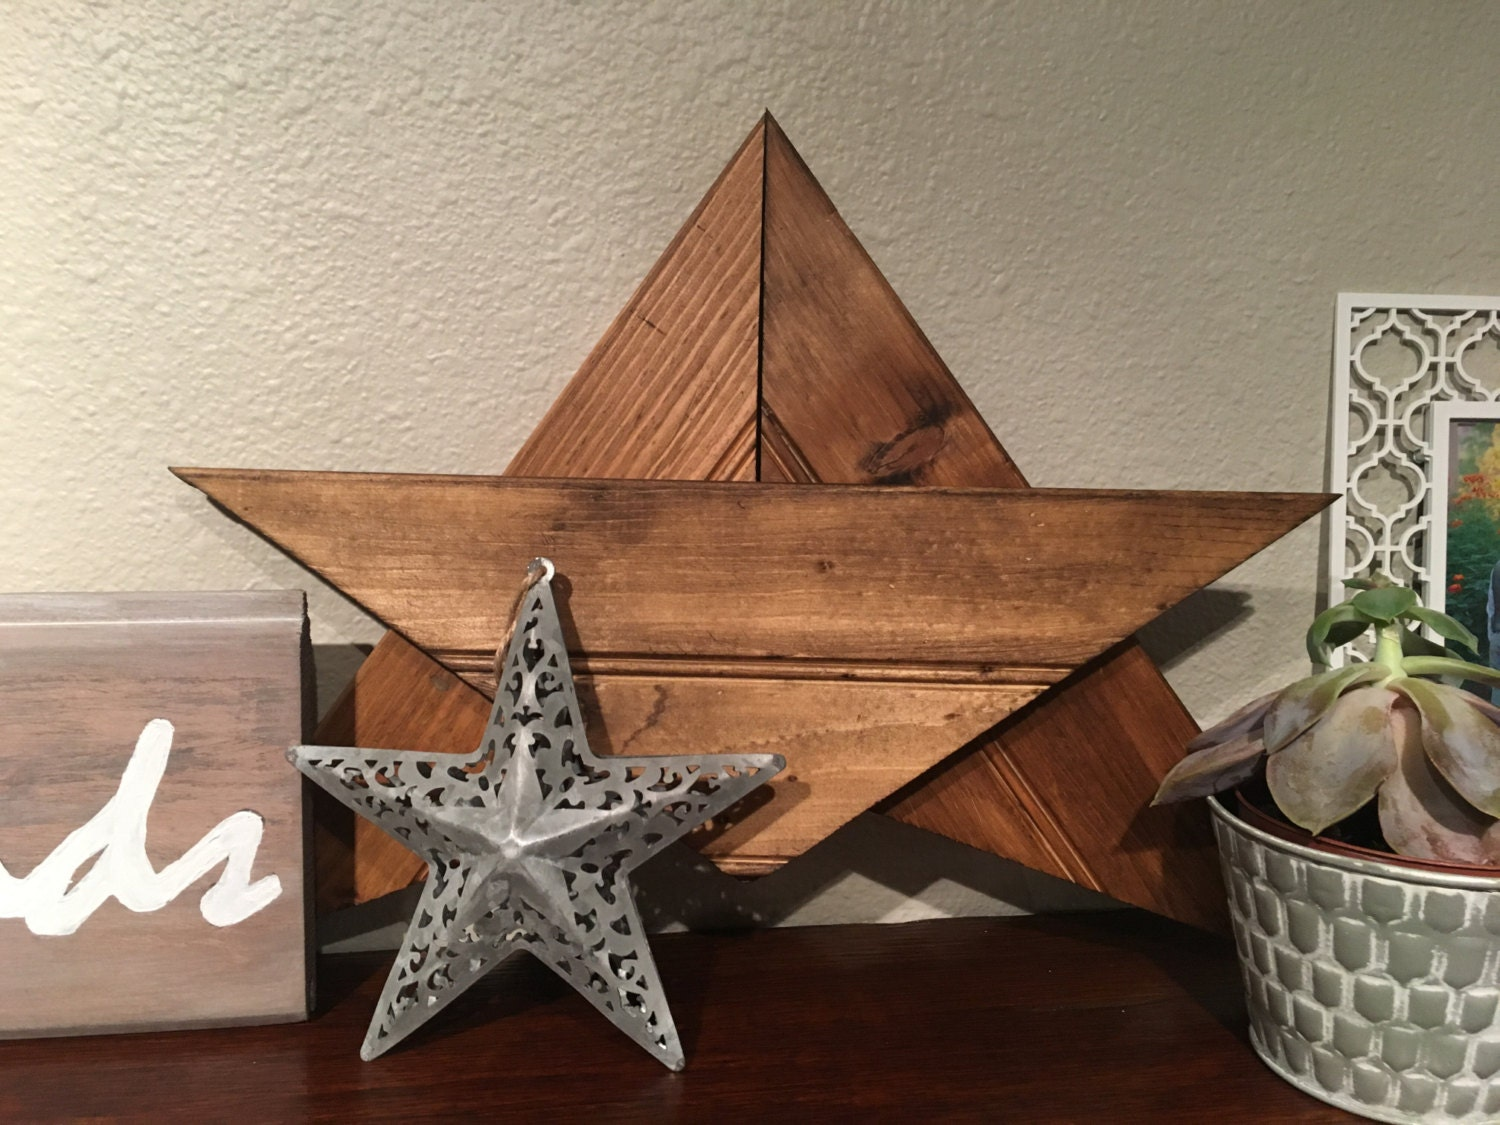 Star Wall Decor Ideas: Wood Star Wooden Star Rustic Wood Star Rustic Wall Decor